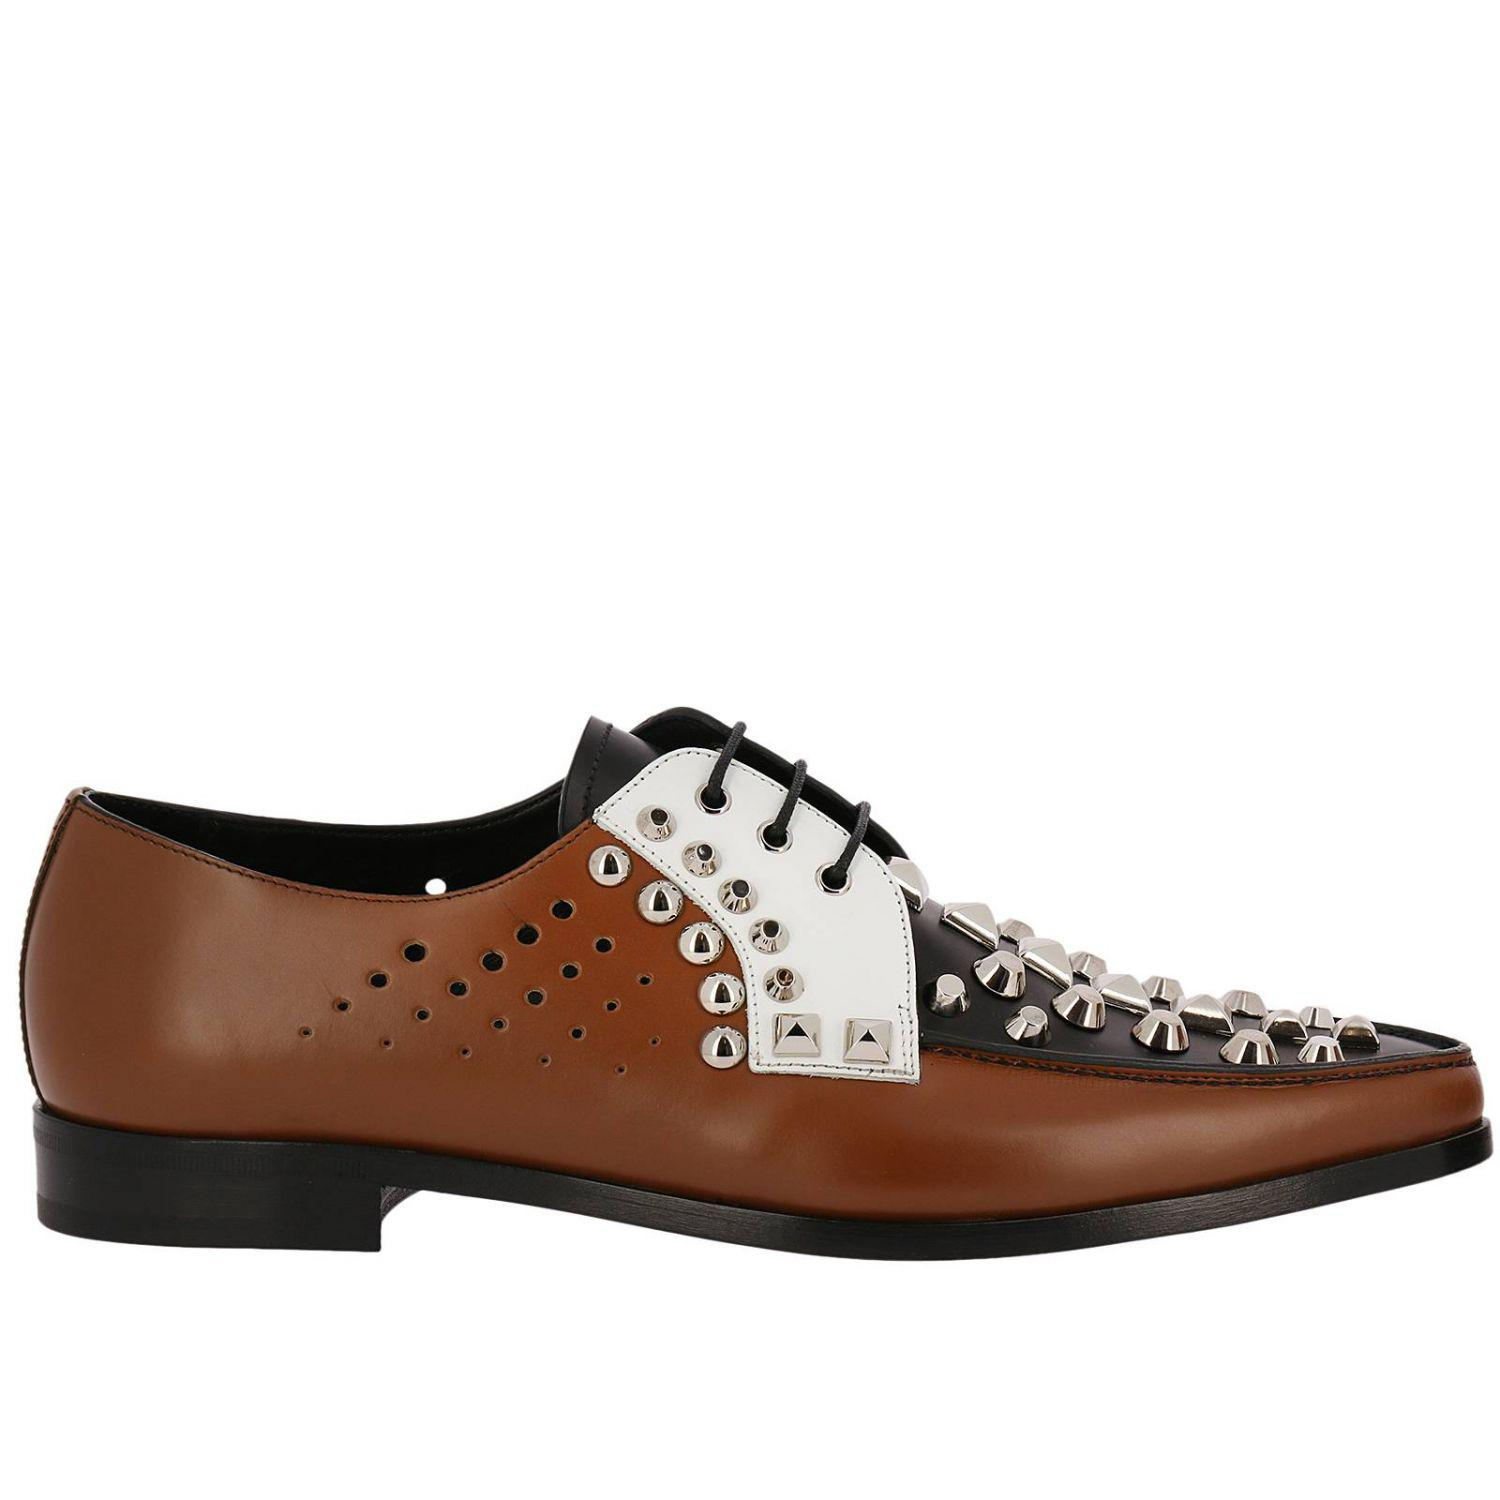 21a842bc82 Prada Loafers Women in Brown - Lyst